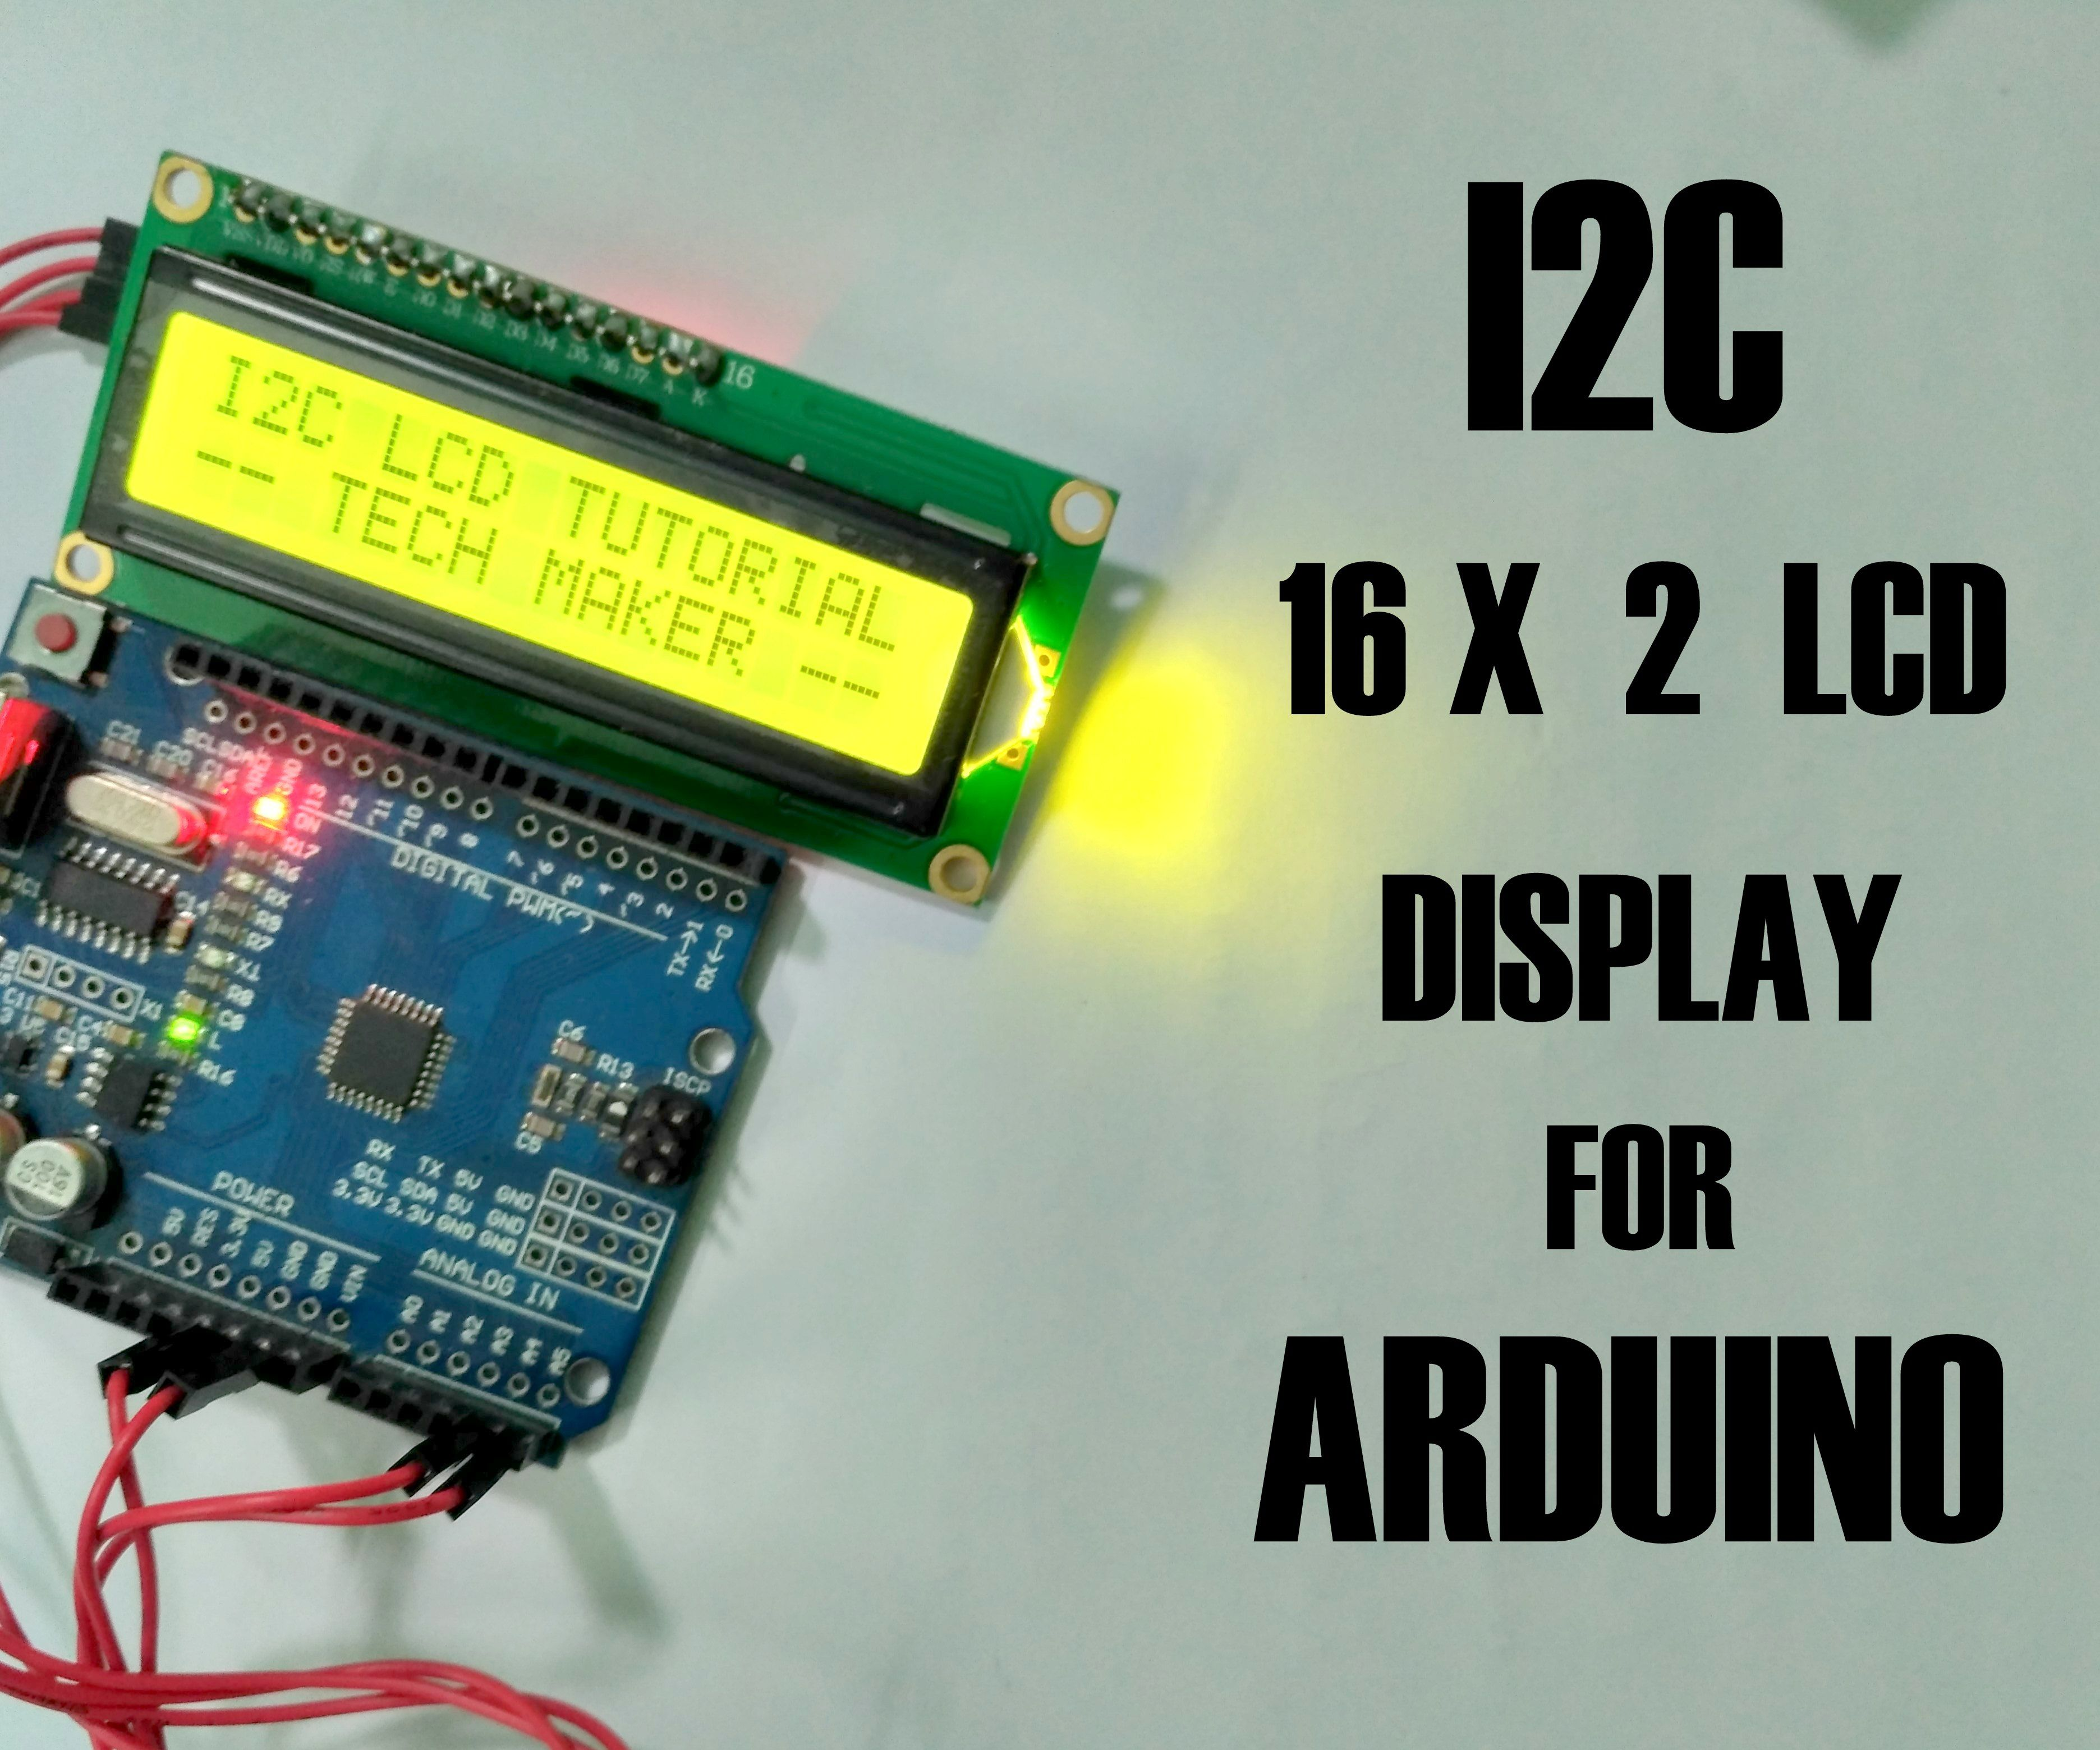 How to Connect I2C Lcd Display to Arduino Uno